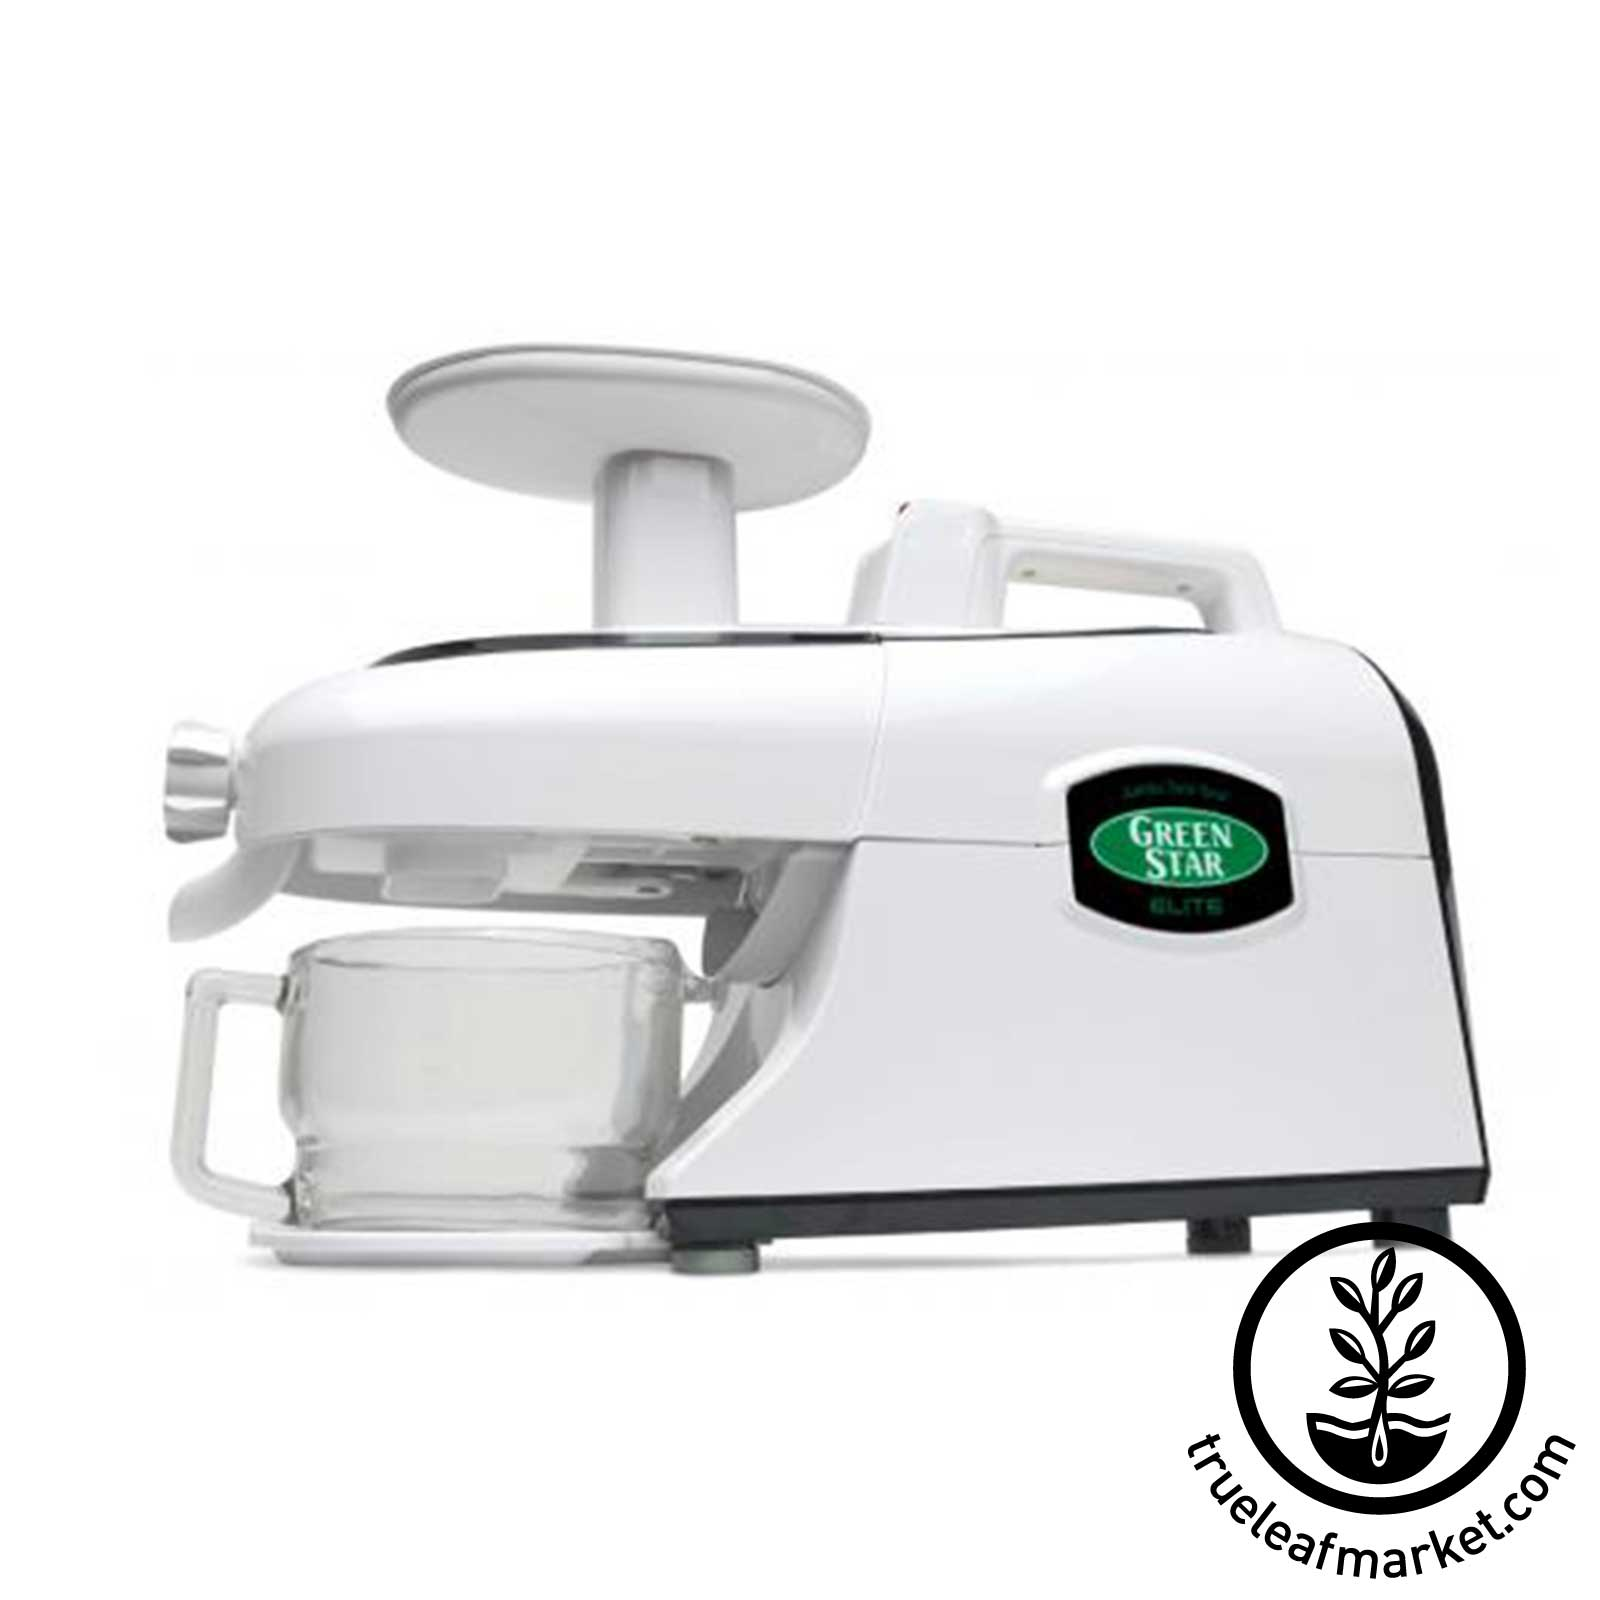 Greenstar Elite 5000 - White